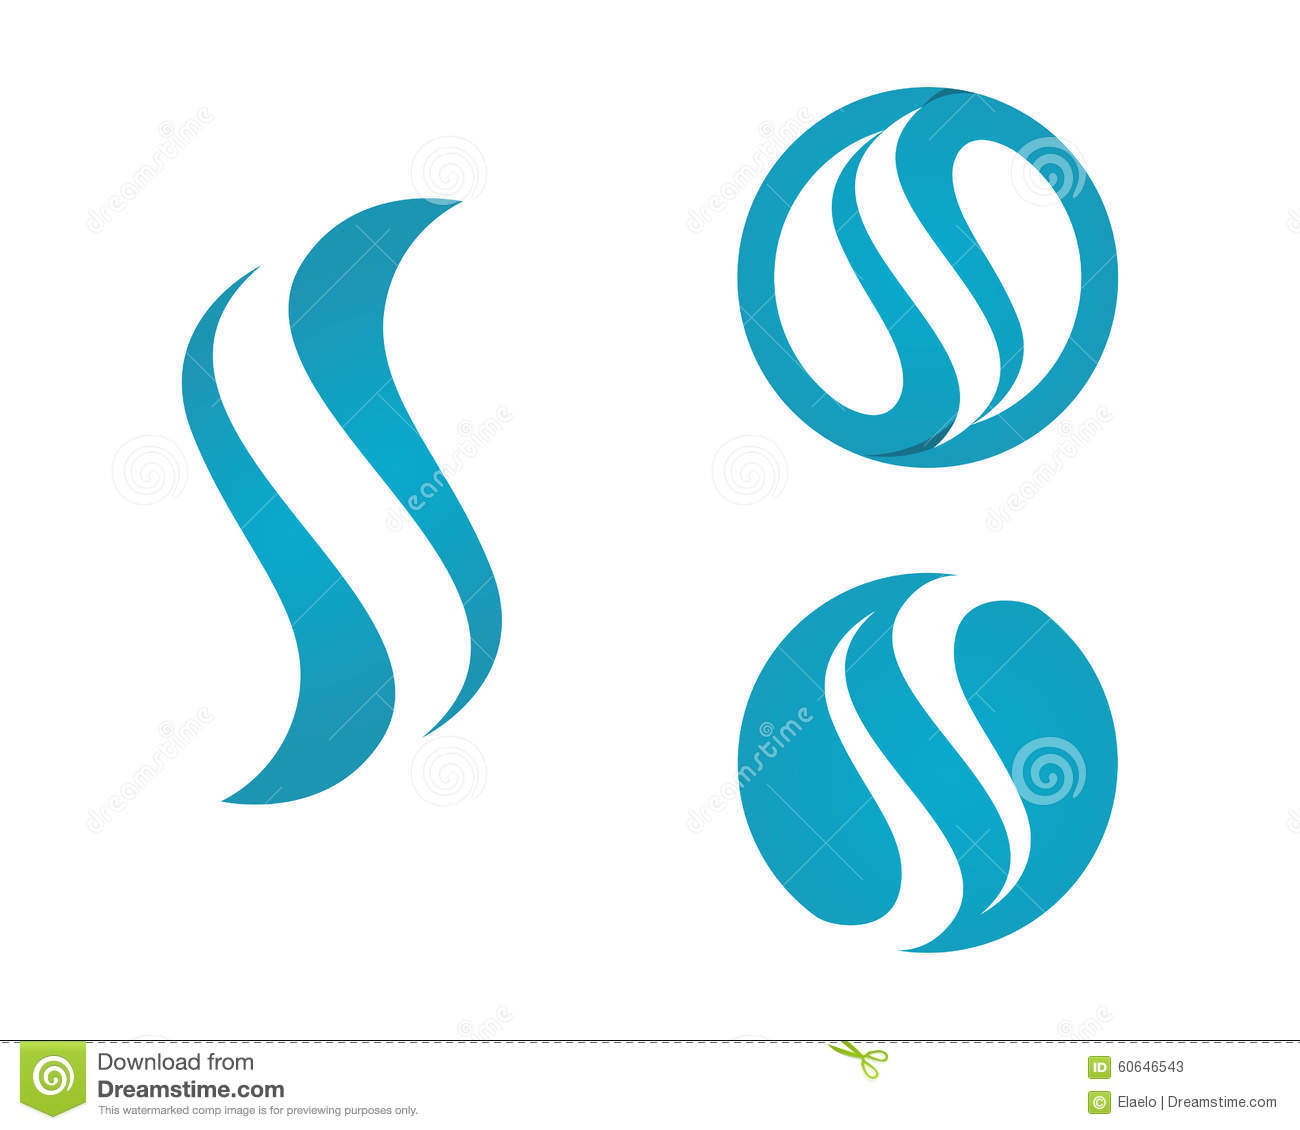 S Letter And S Logo Stock Vector Image 60646543